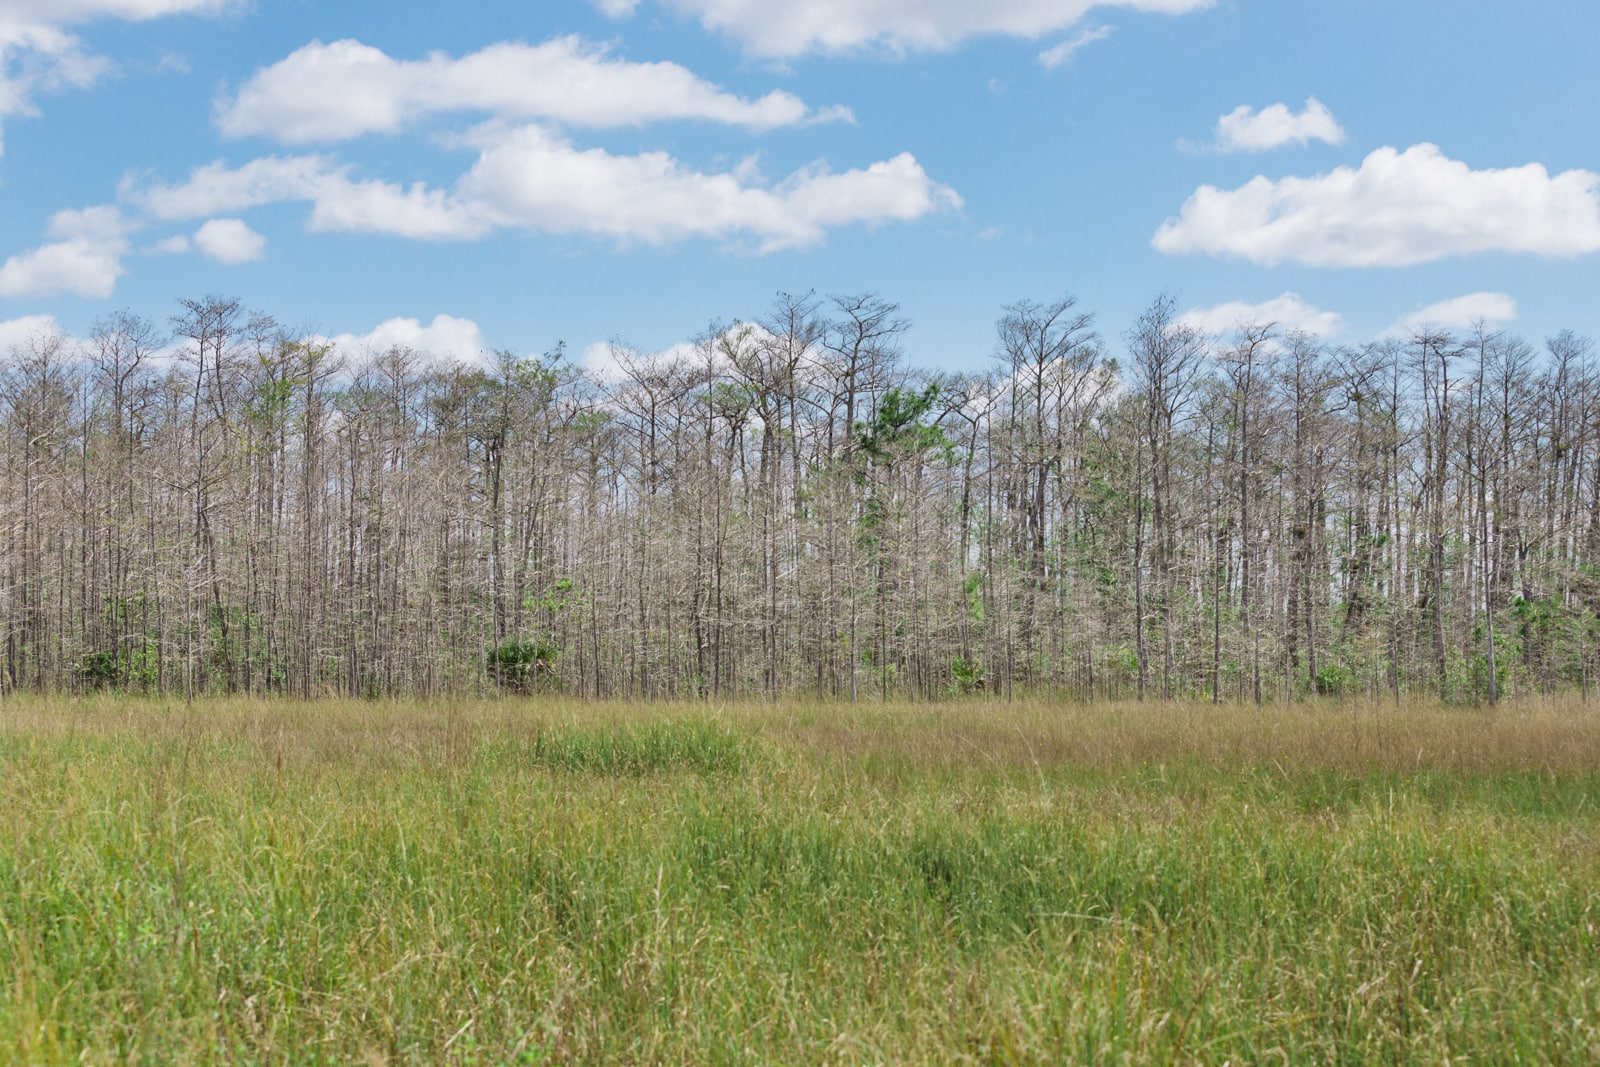 Everglades Sawgrass Prairie and Slash pine trees